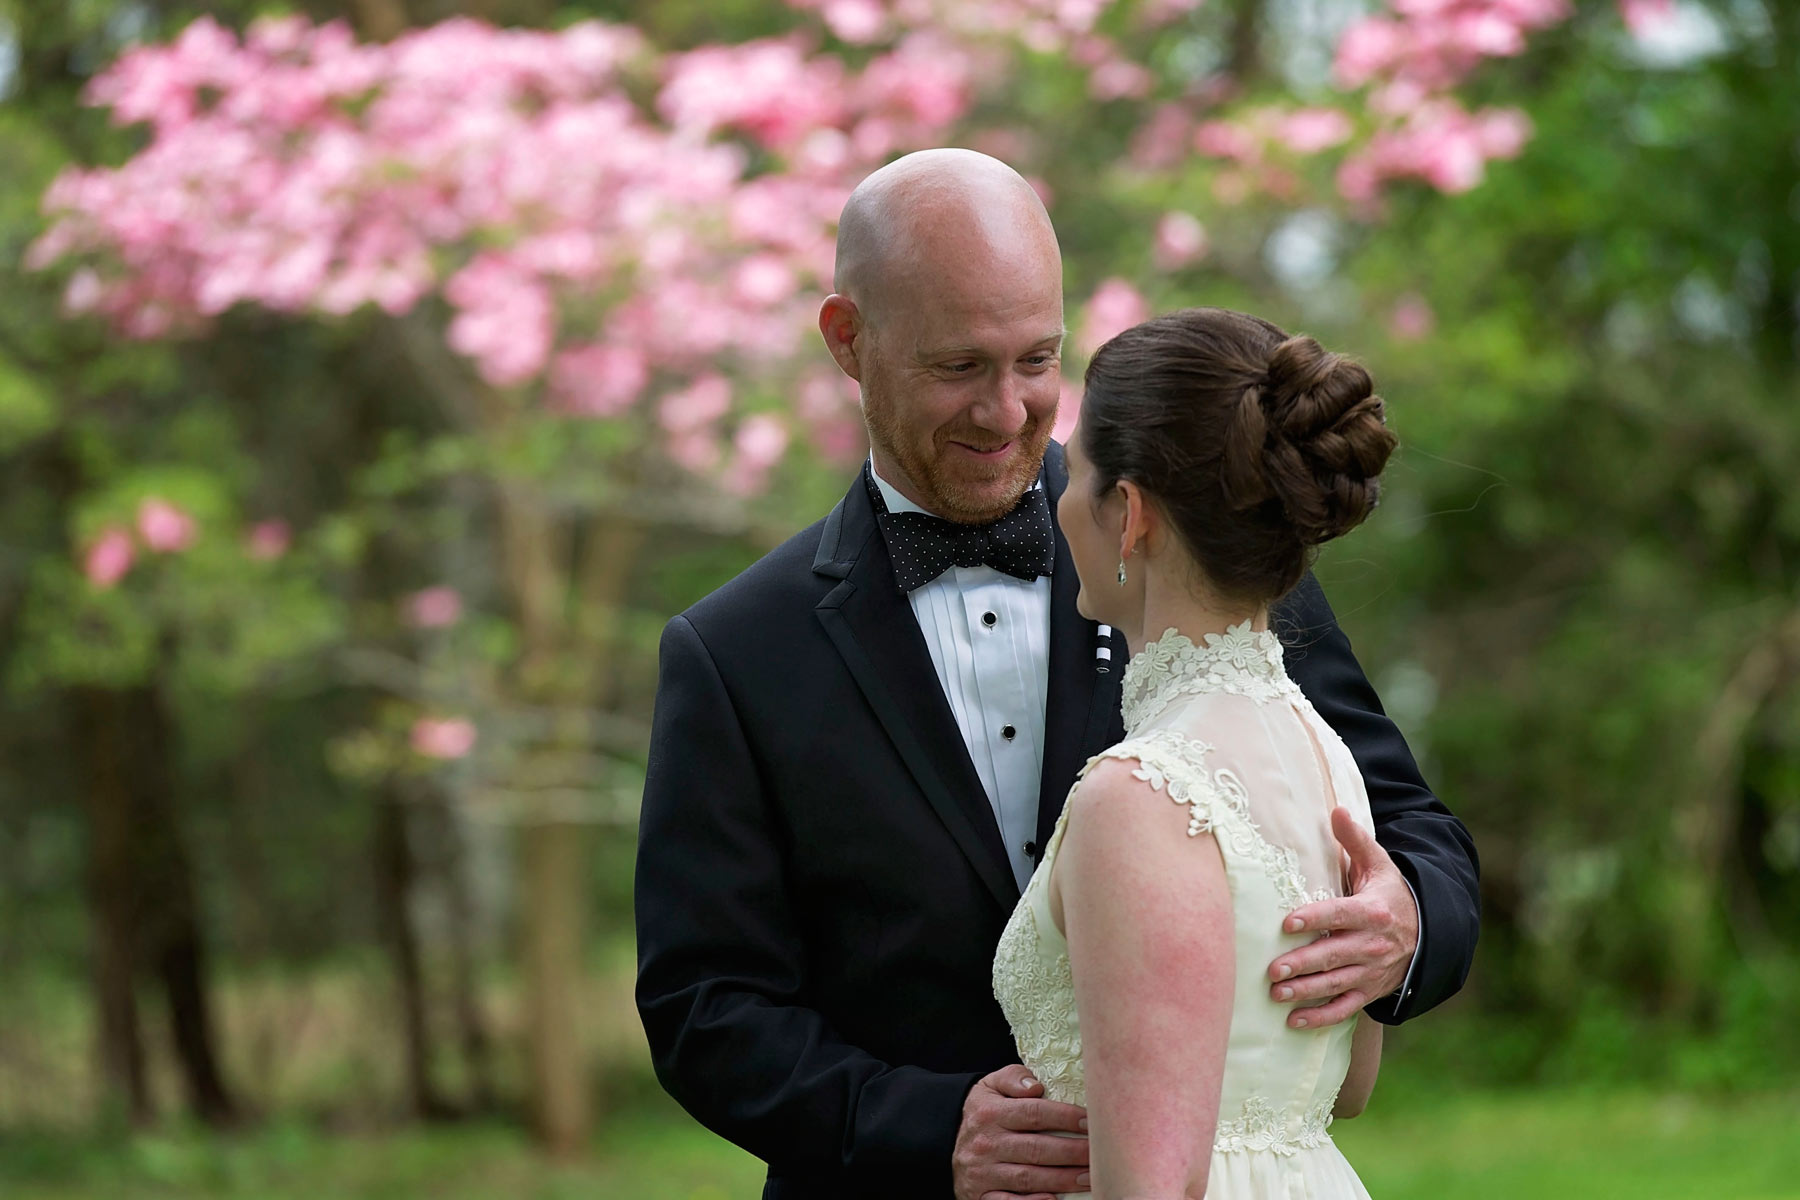 The groom smiles at seeing his bride for the first time